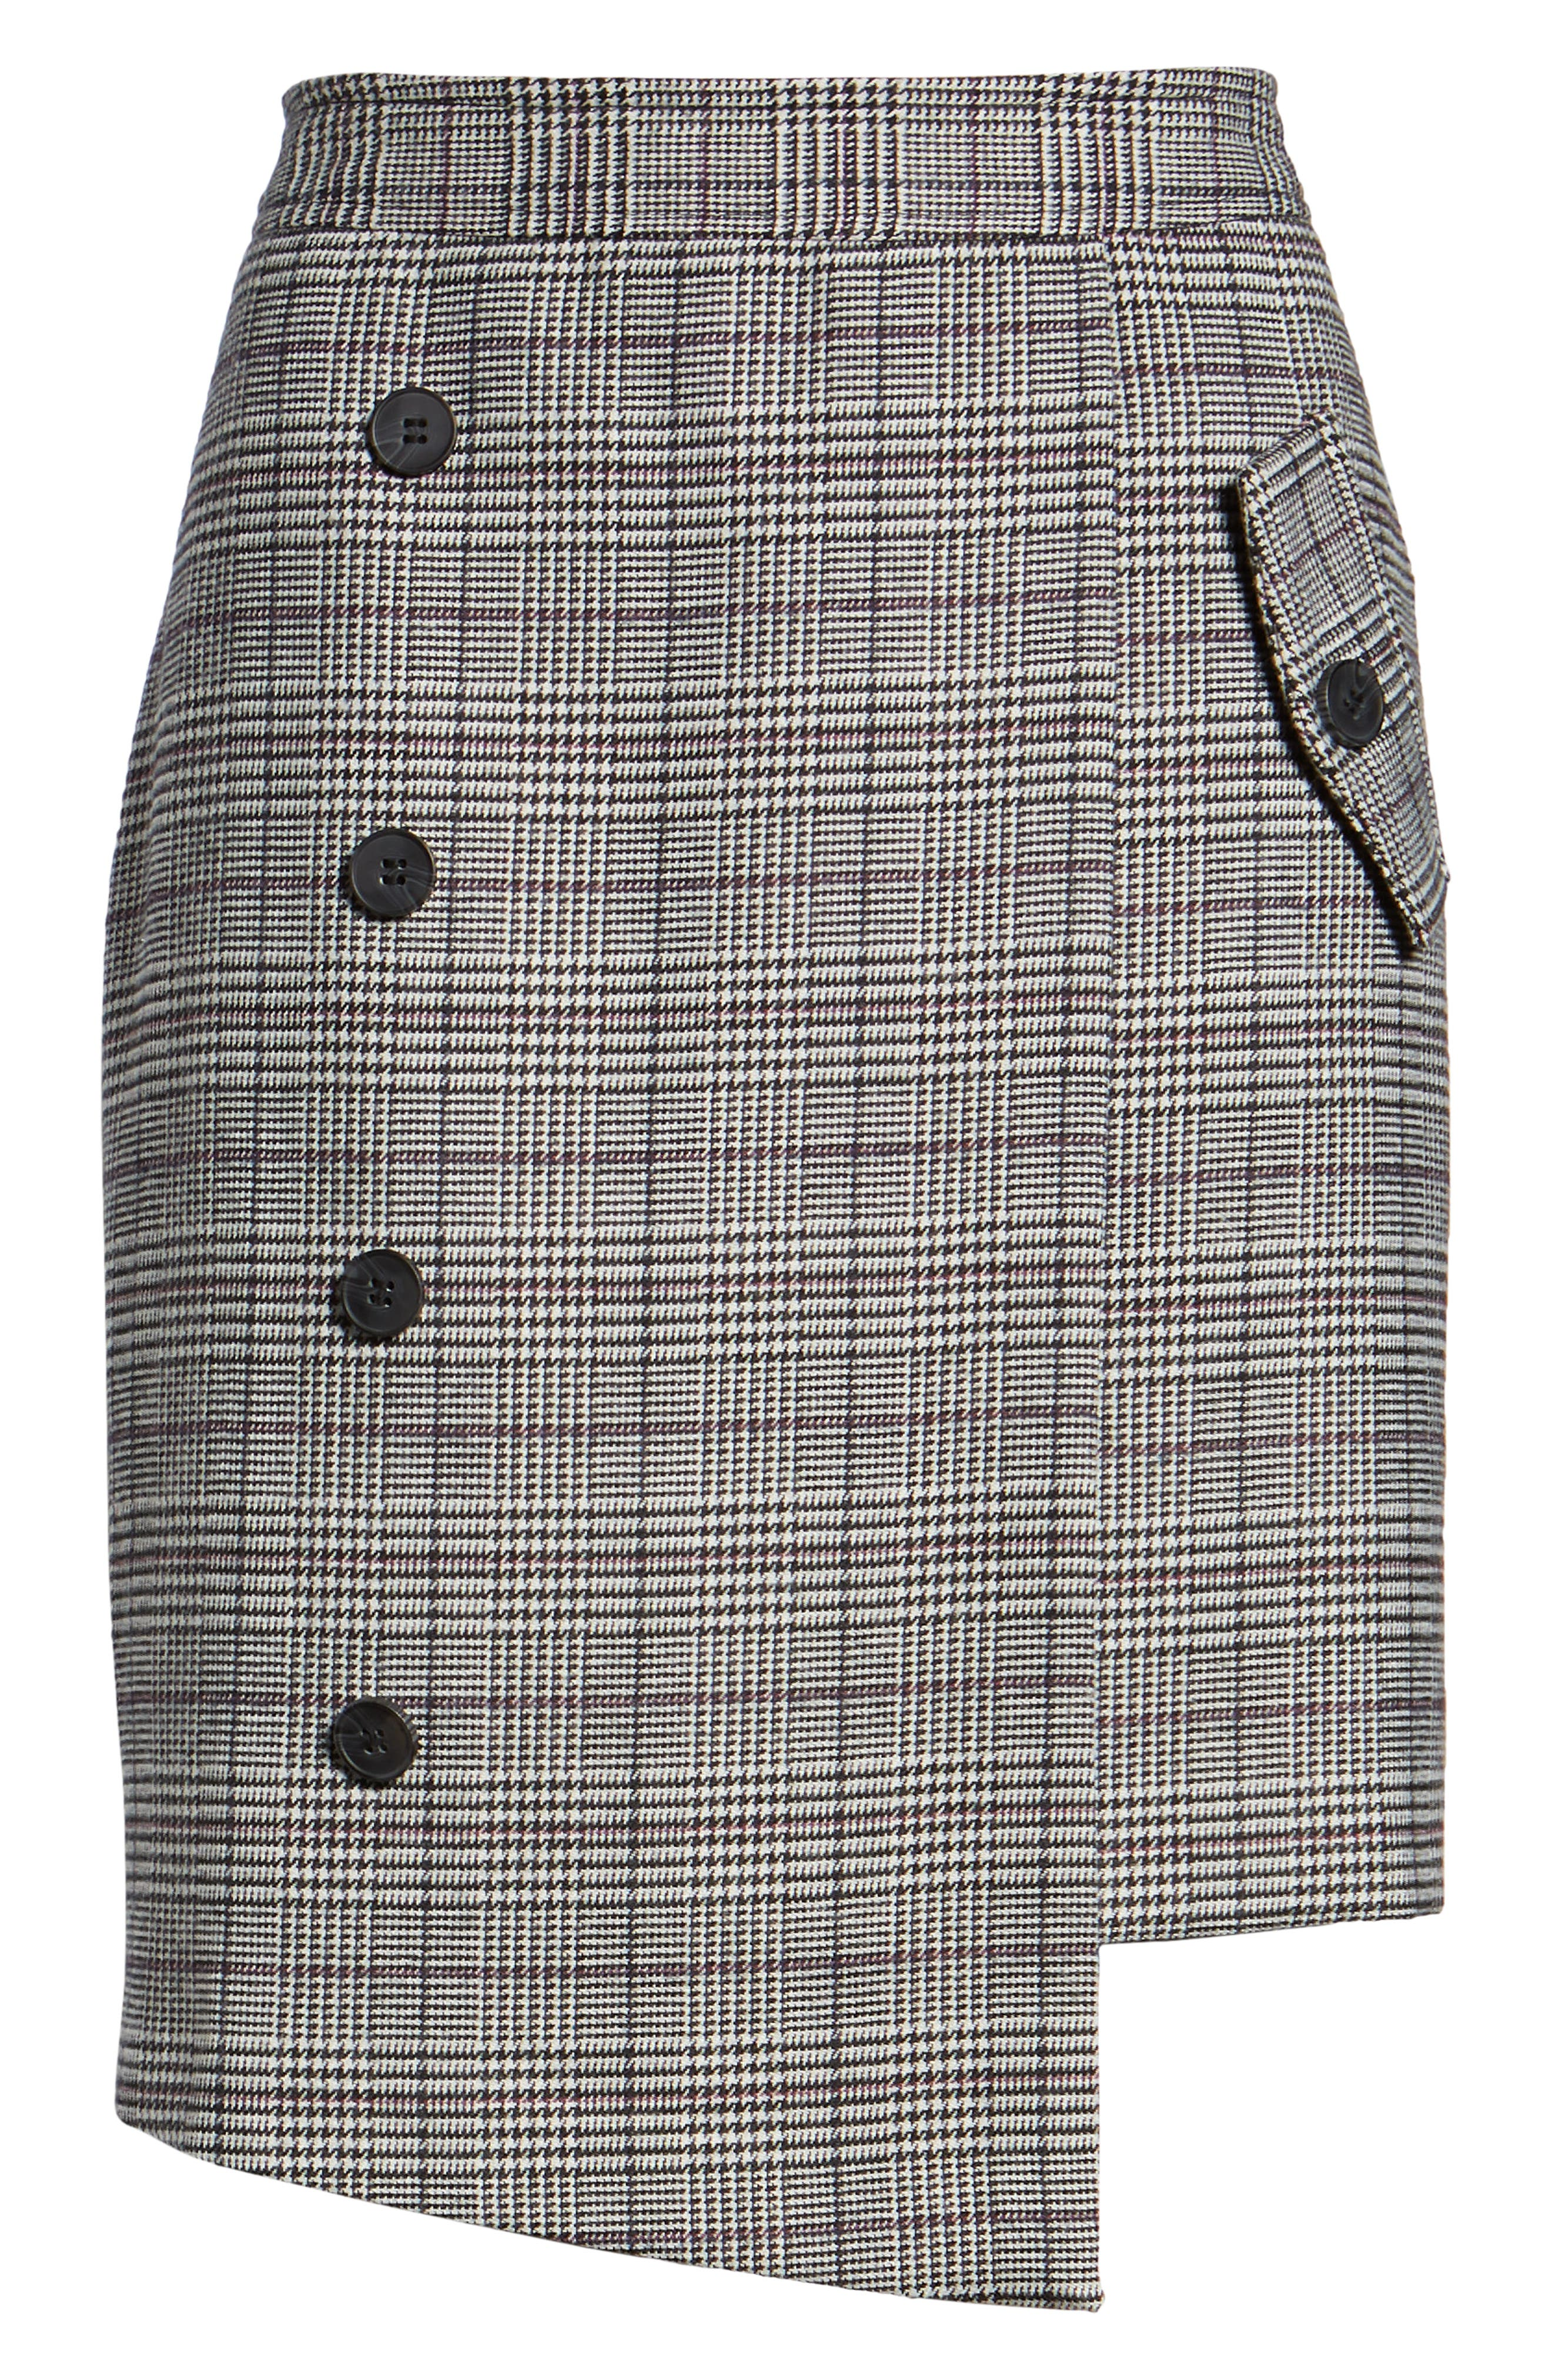 Chriselle Lim Bianca Houndstooth Button Front Skirt,                             Alternate thumbnail 7, color,                             GREY PLAID